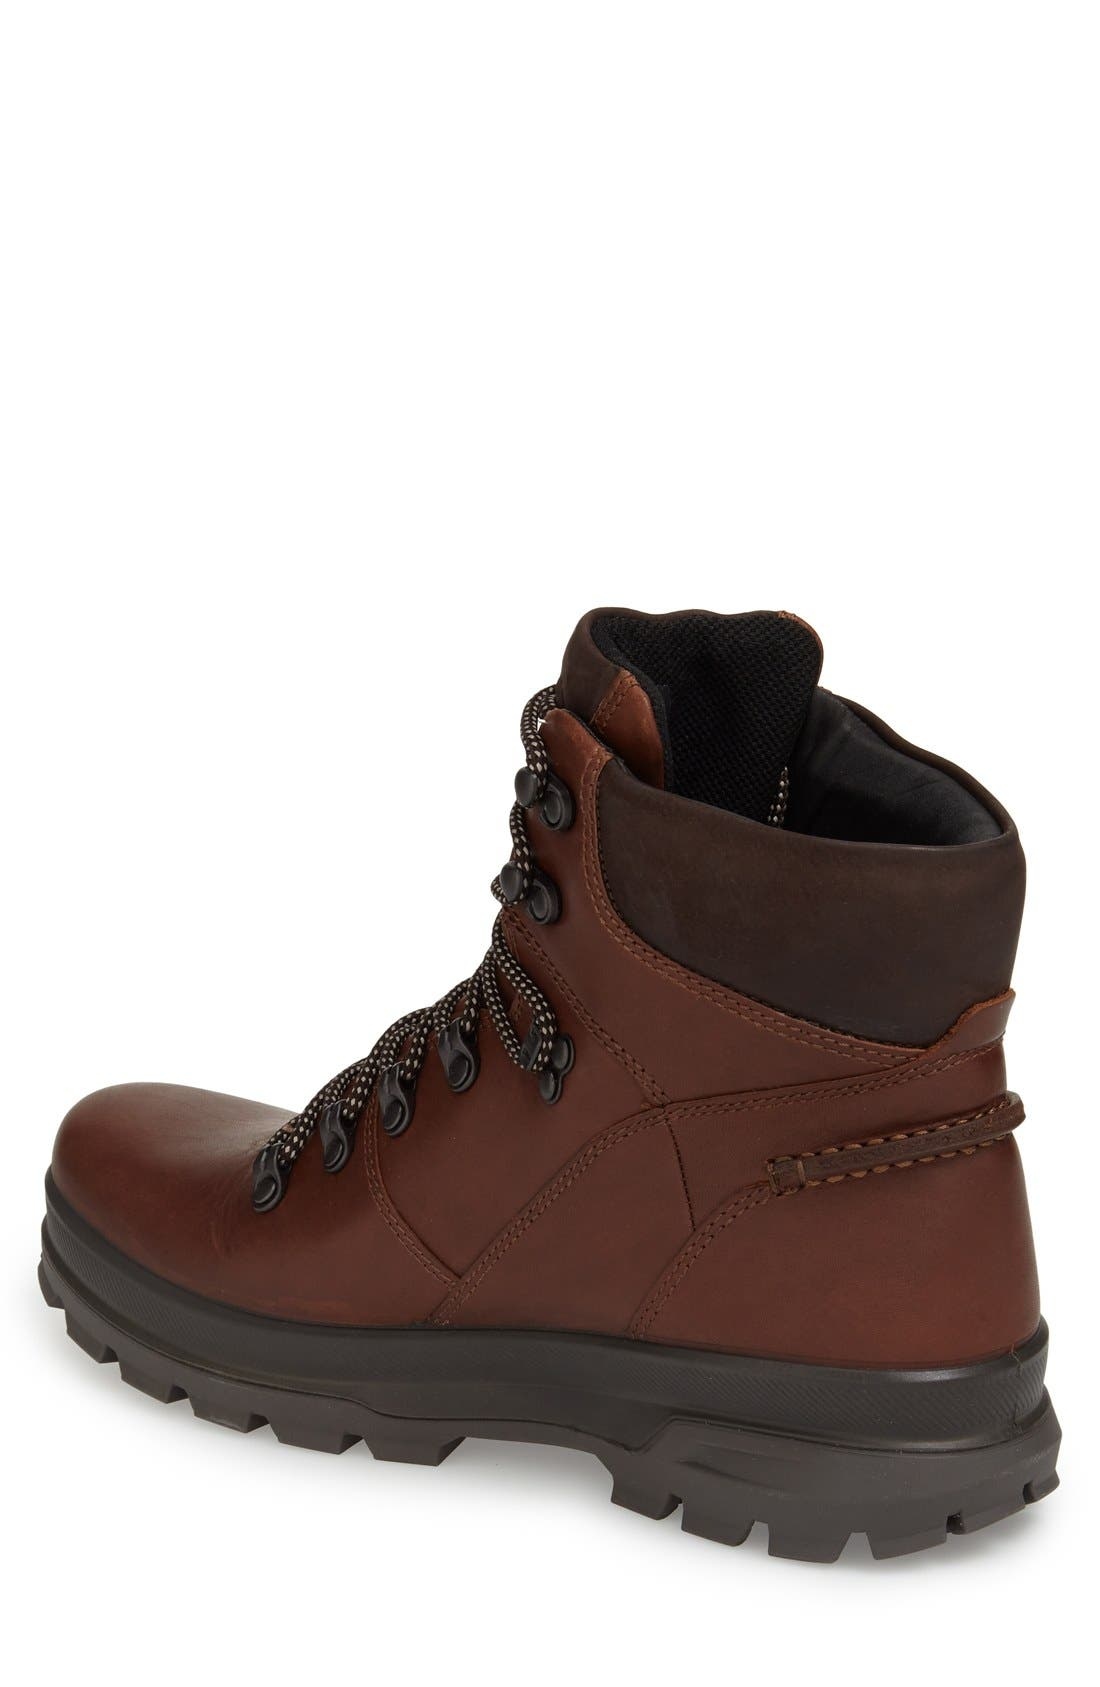 'Rugged Track GTX' Hiking Boot,                             Alternate thumbnail 2, color,                             BISON/ MOCHA LEATHER